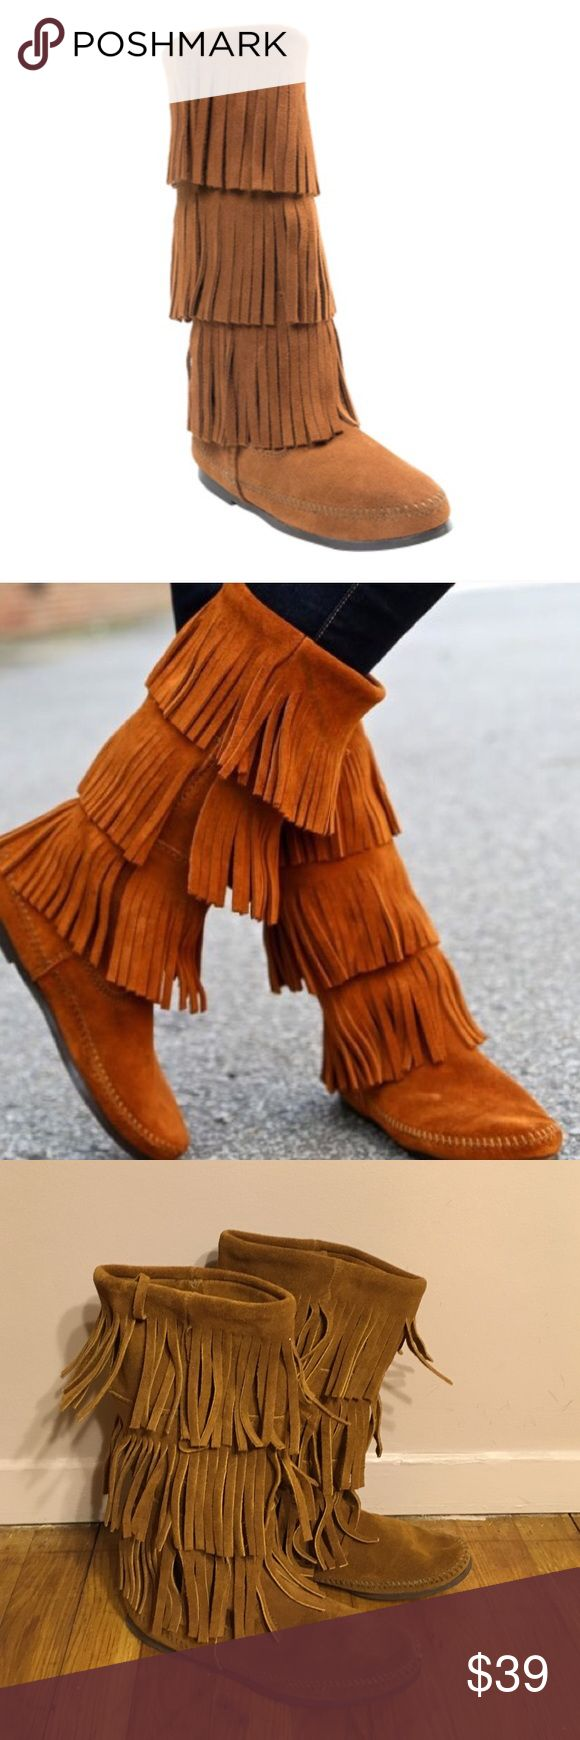 Minnetonka suede leather knee high tall lace up moccasin fringe boots - Minnetonka 3 Tier Fringe Suade Boots Minnetonka 3 Tier Fringe Suade Boots Size 6 Soft Suedemoccasinshigh